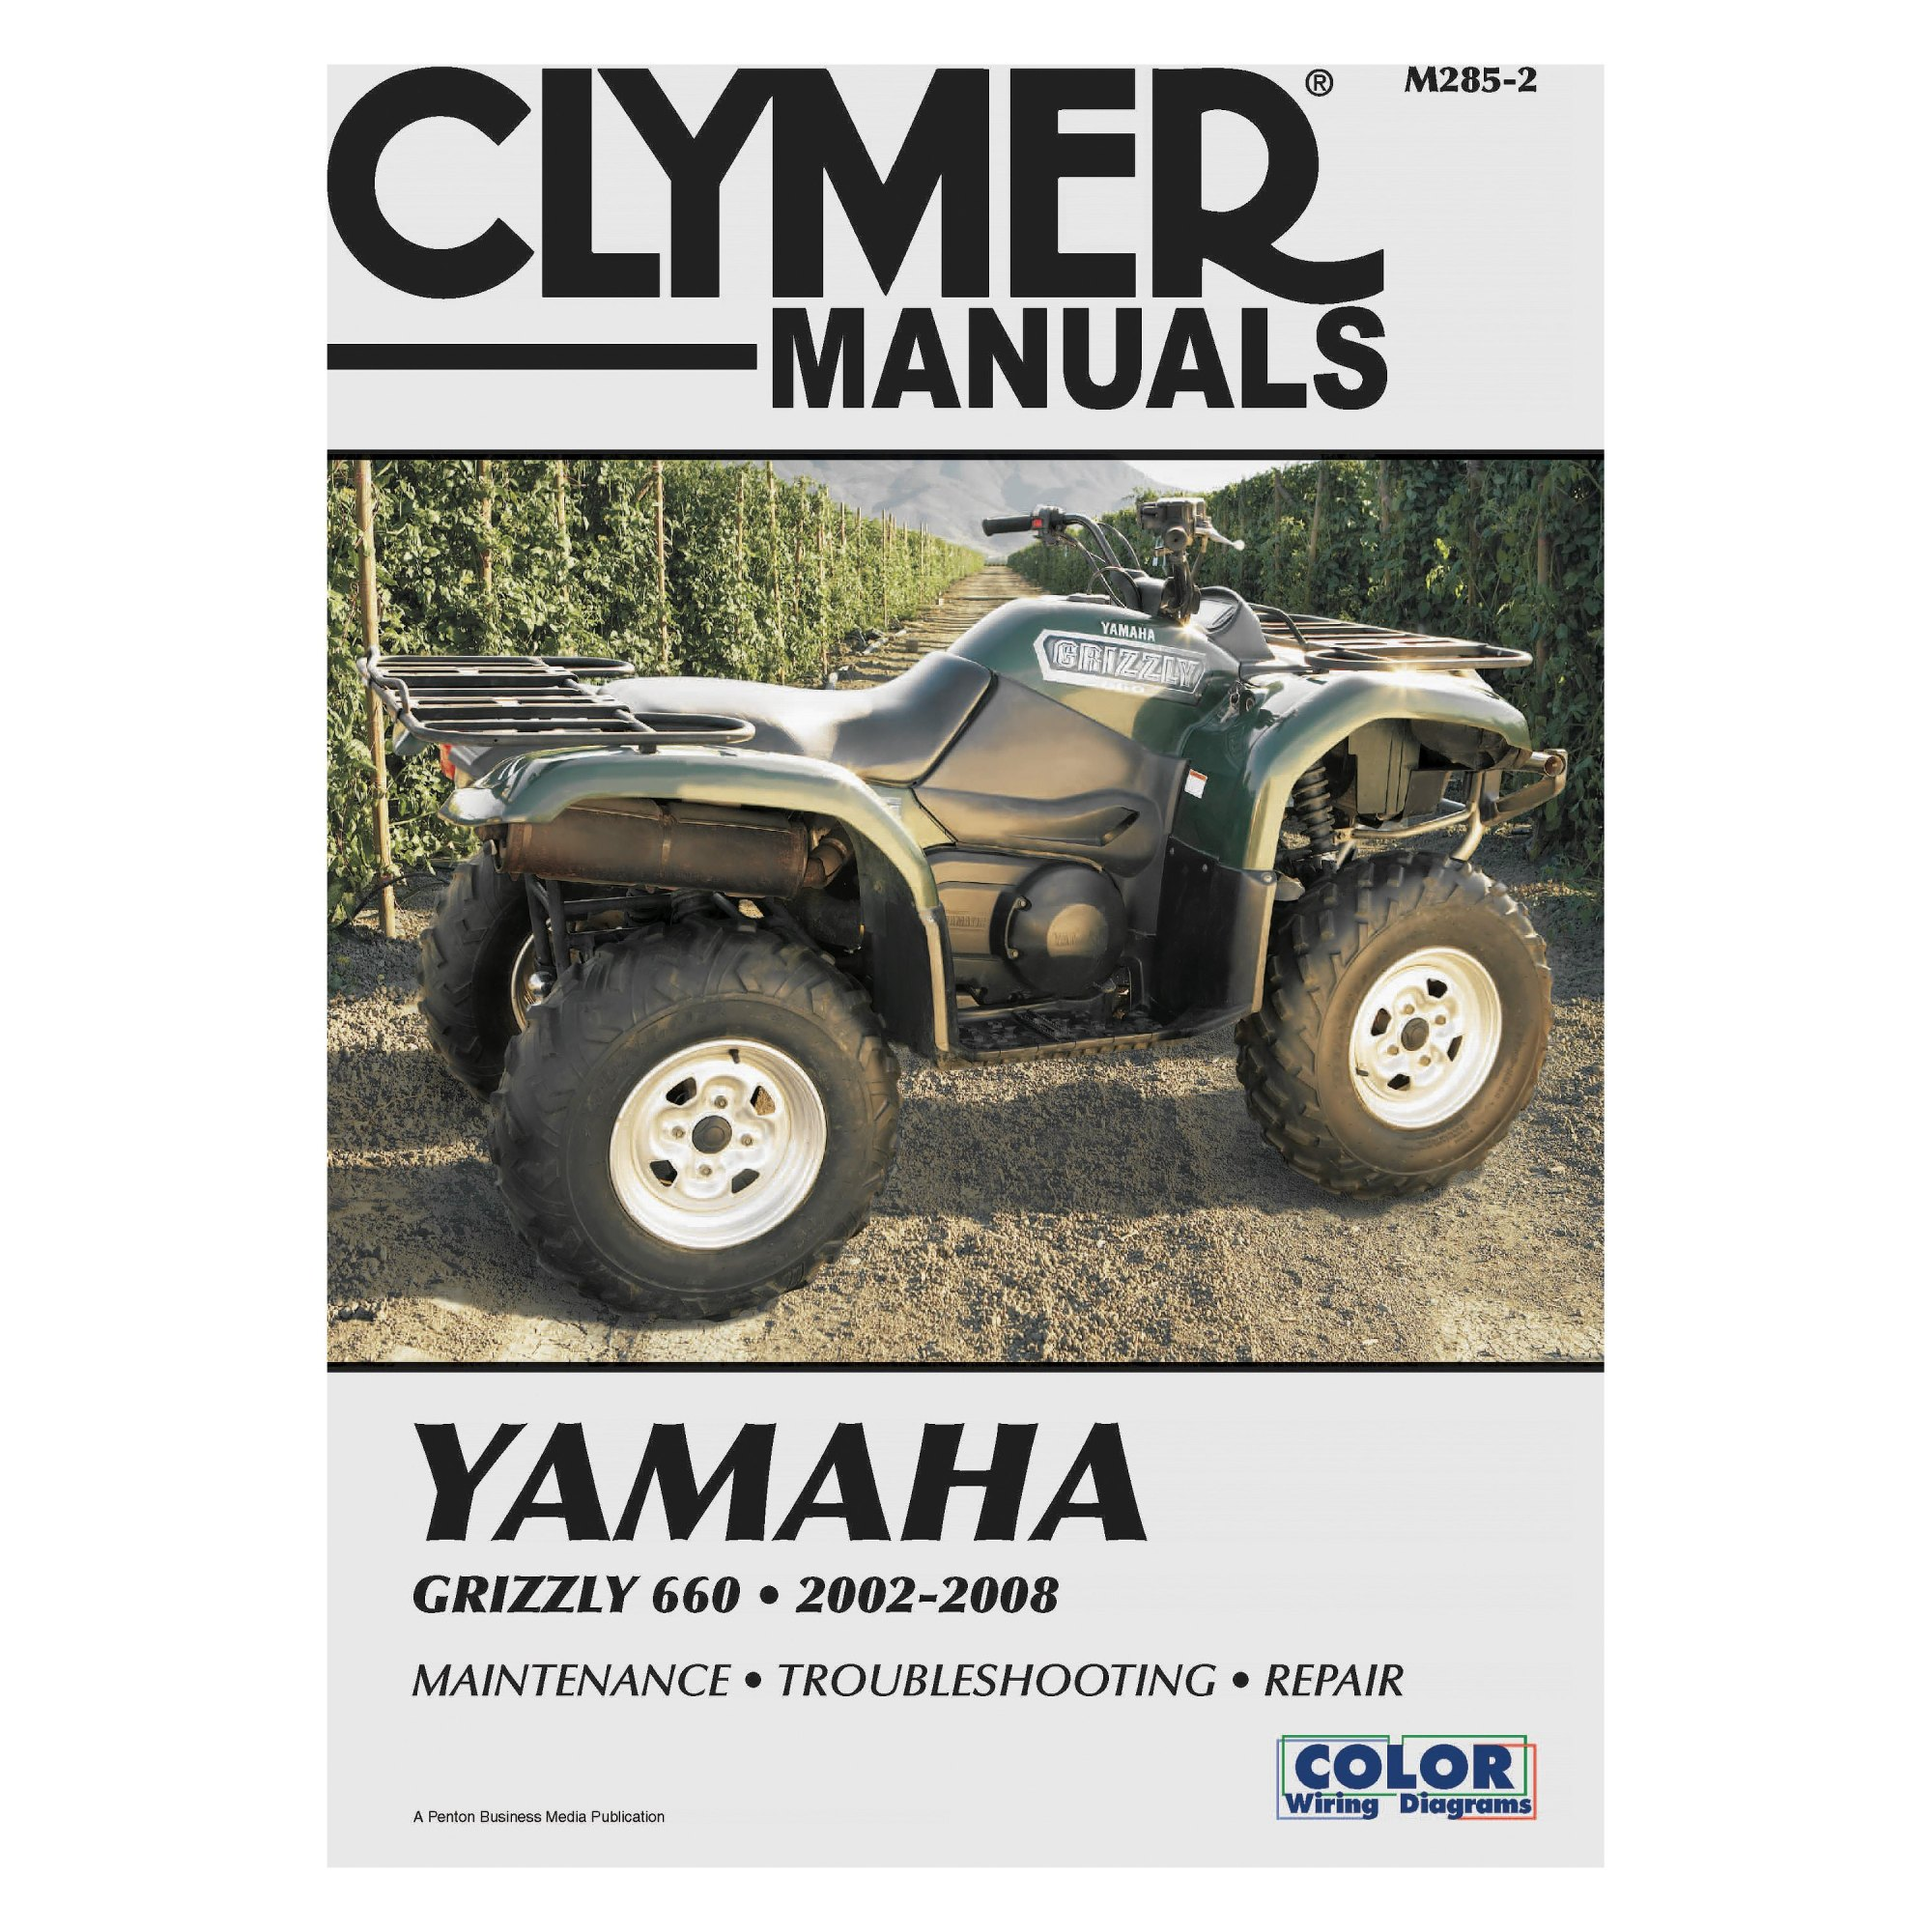 hight resolution of clymer yamaha grizzly 660 2002 2008 manual